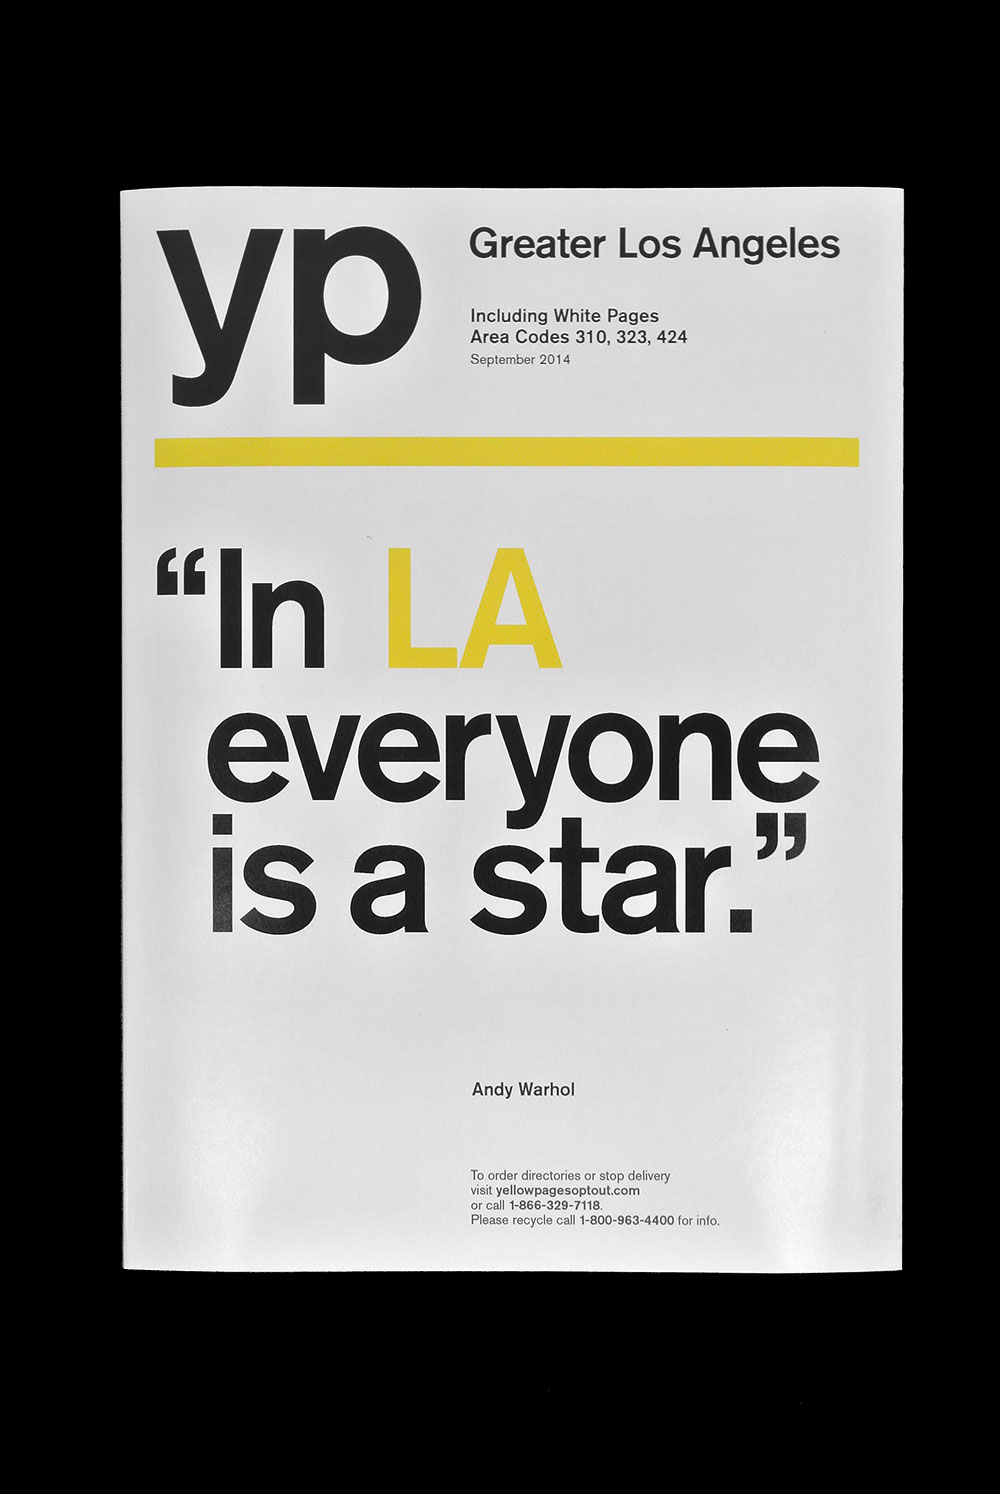 Yellow Pages, Matthijs Matt van Leeuwen, Interbrand, Forest Young, YP Cover Los Angeles, Andy Warhol